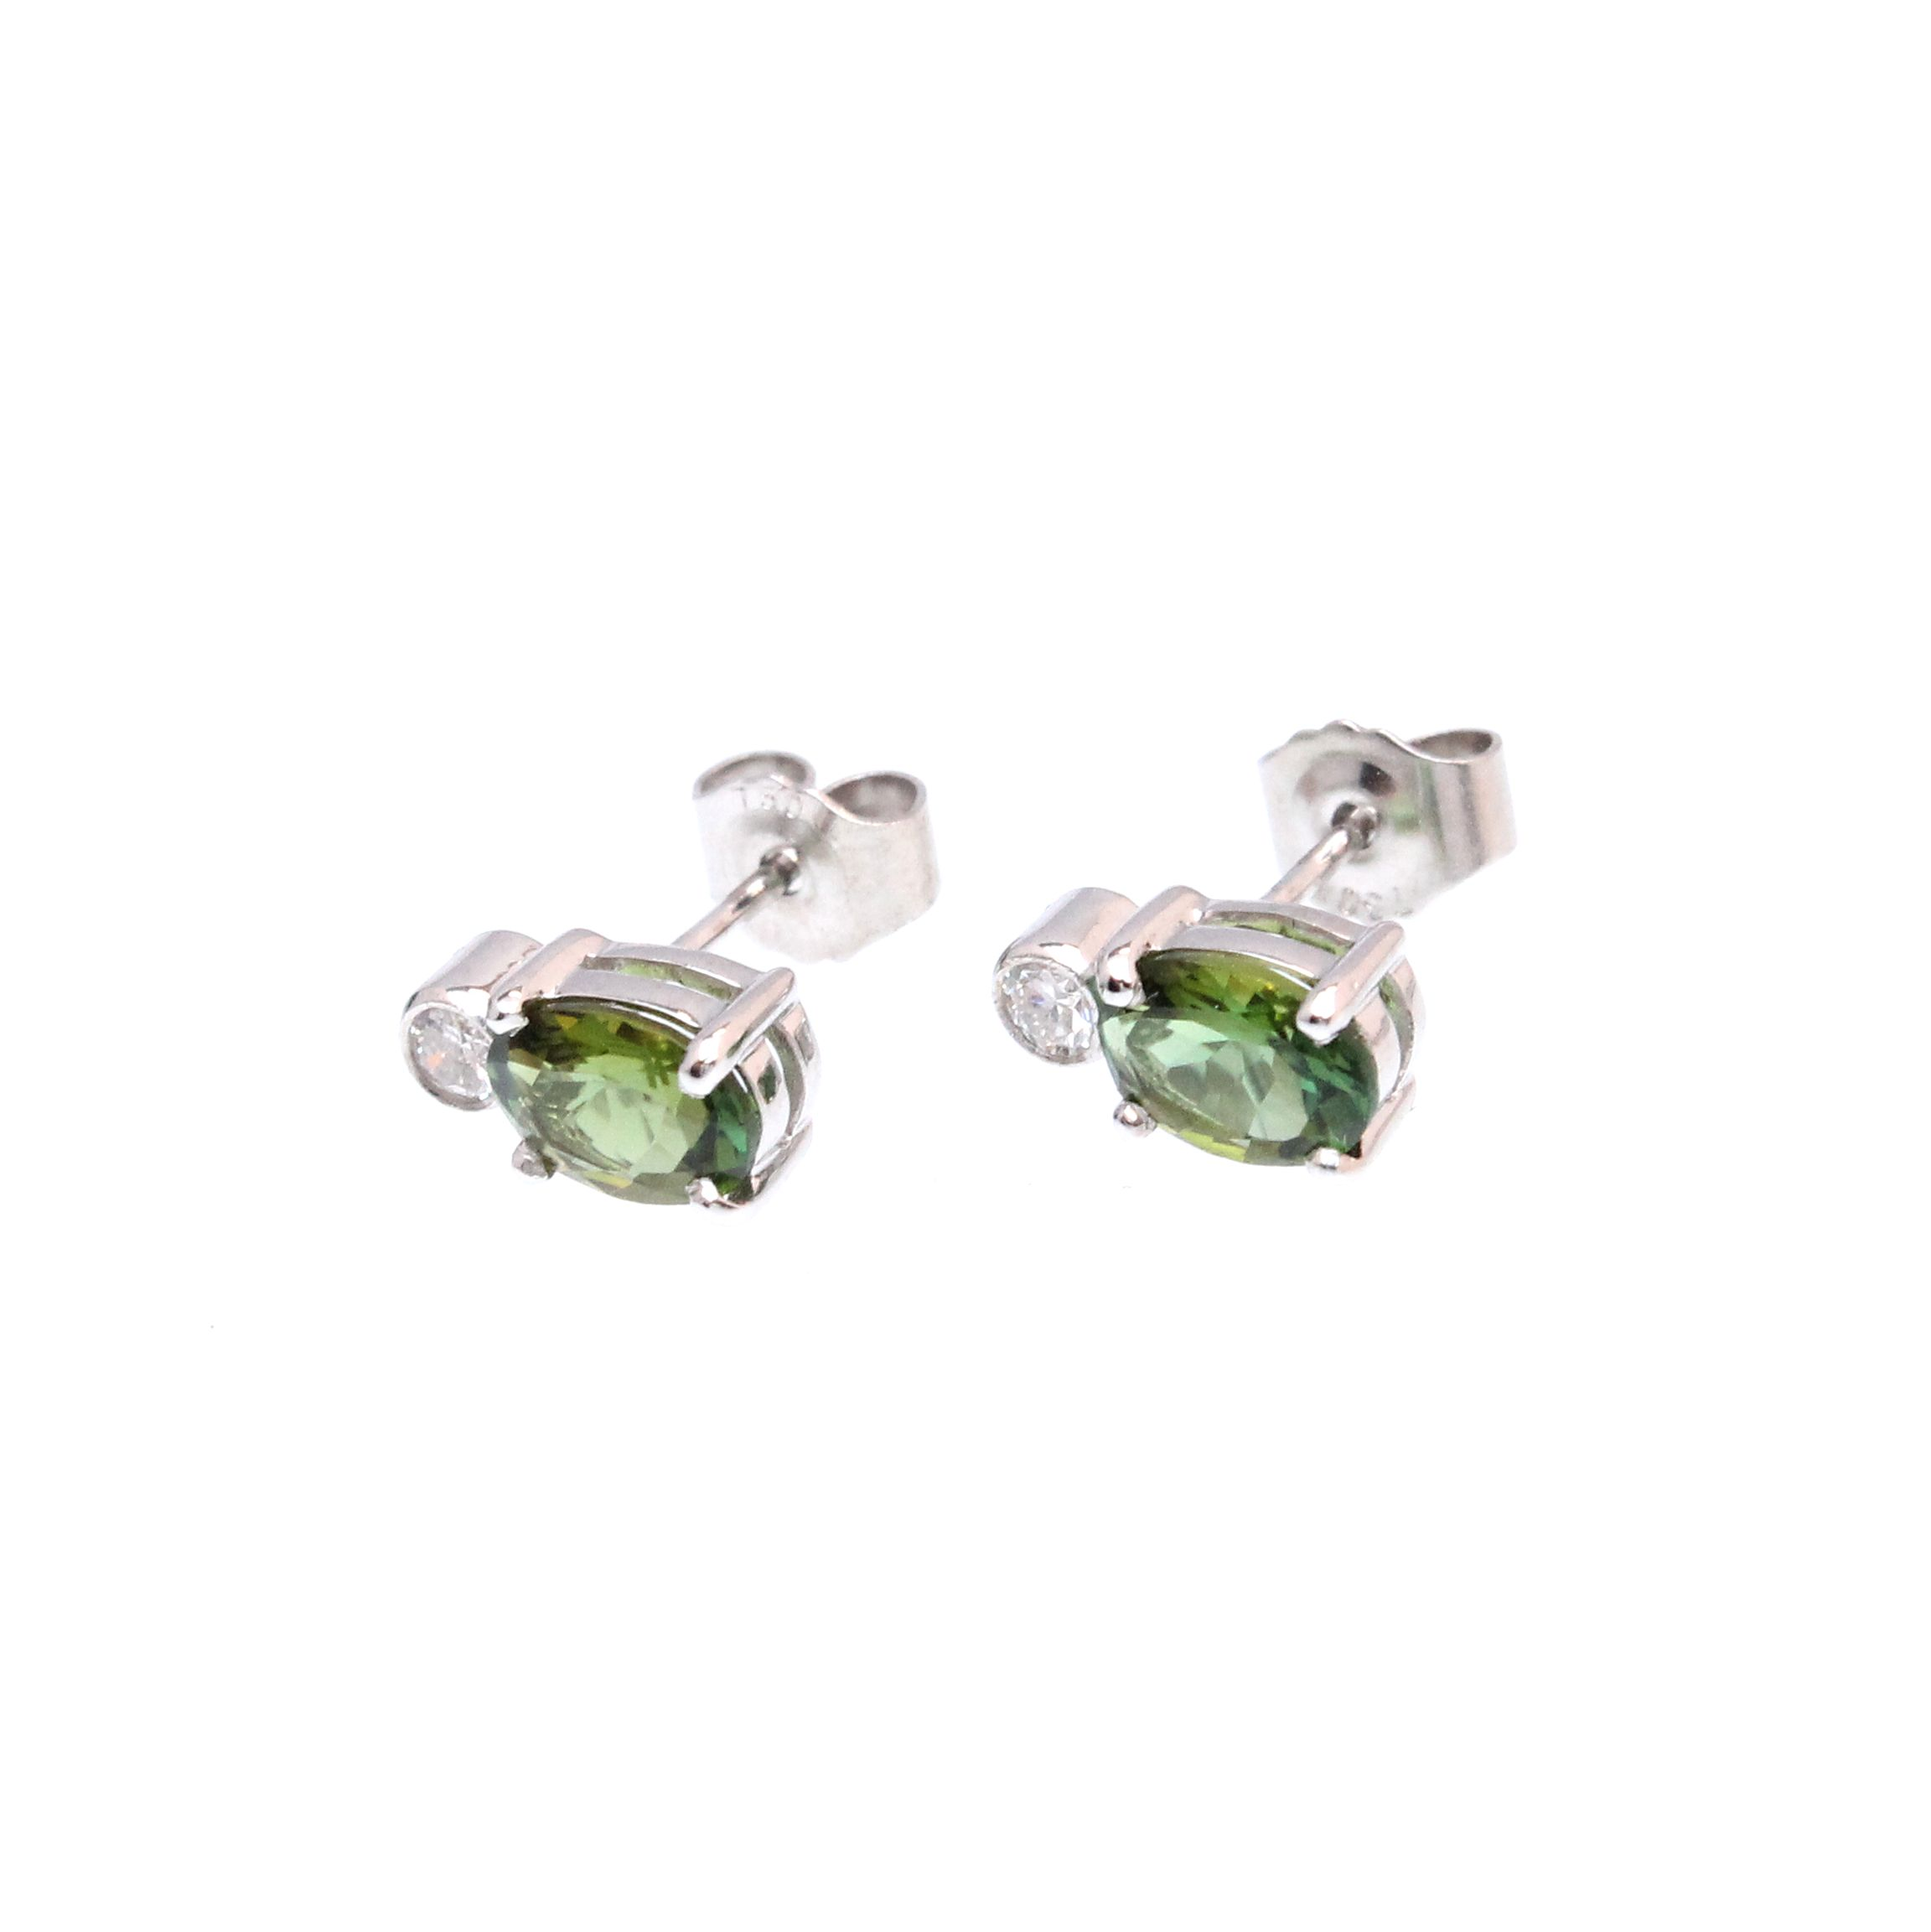 earrings pave charles diamond son studs schwartz jewellery stud atlantico shop jewelry